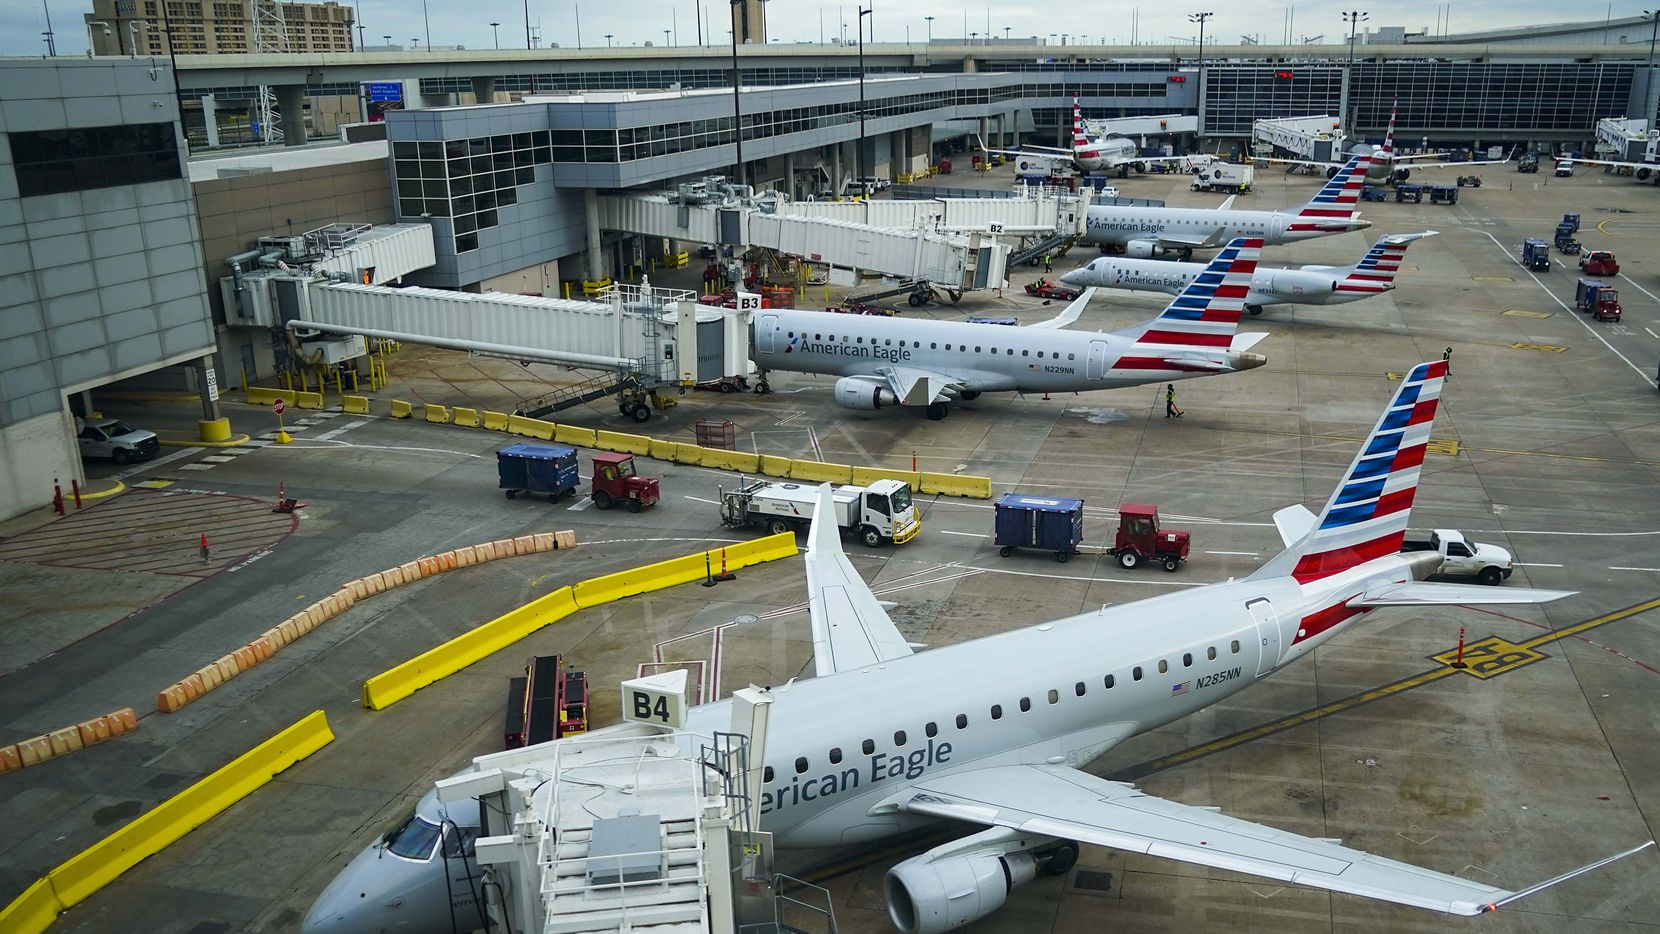 American Eagle planes parked at their gates at DFW International Airport. American Airlines on Monday overturned a policy that restricted many motorized wheelchairs from flying as cargo on regional jets such as these.